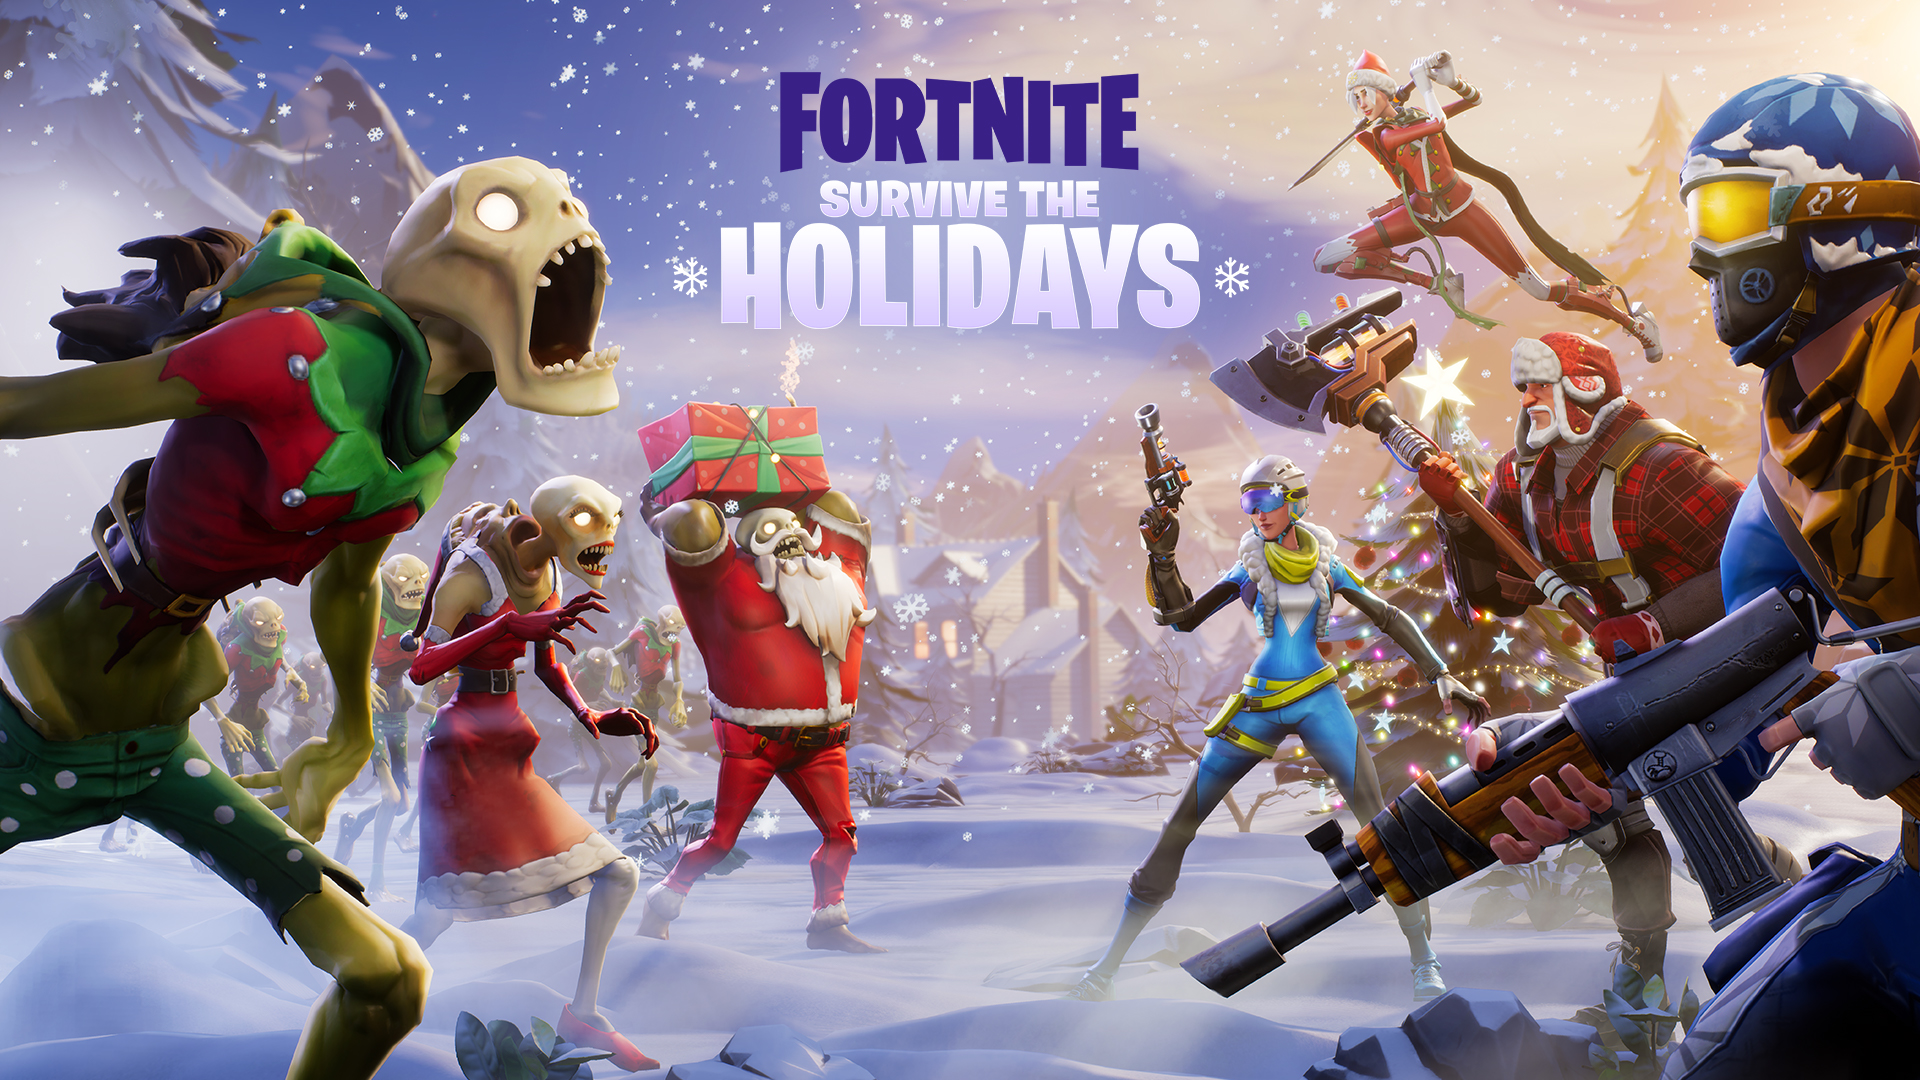 save the world survive the holidays - nouvelle boutique fortnite 3 mai 2019